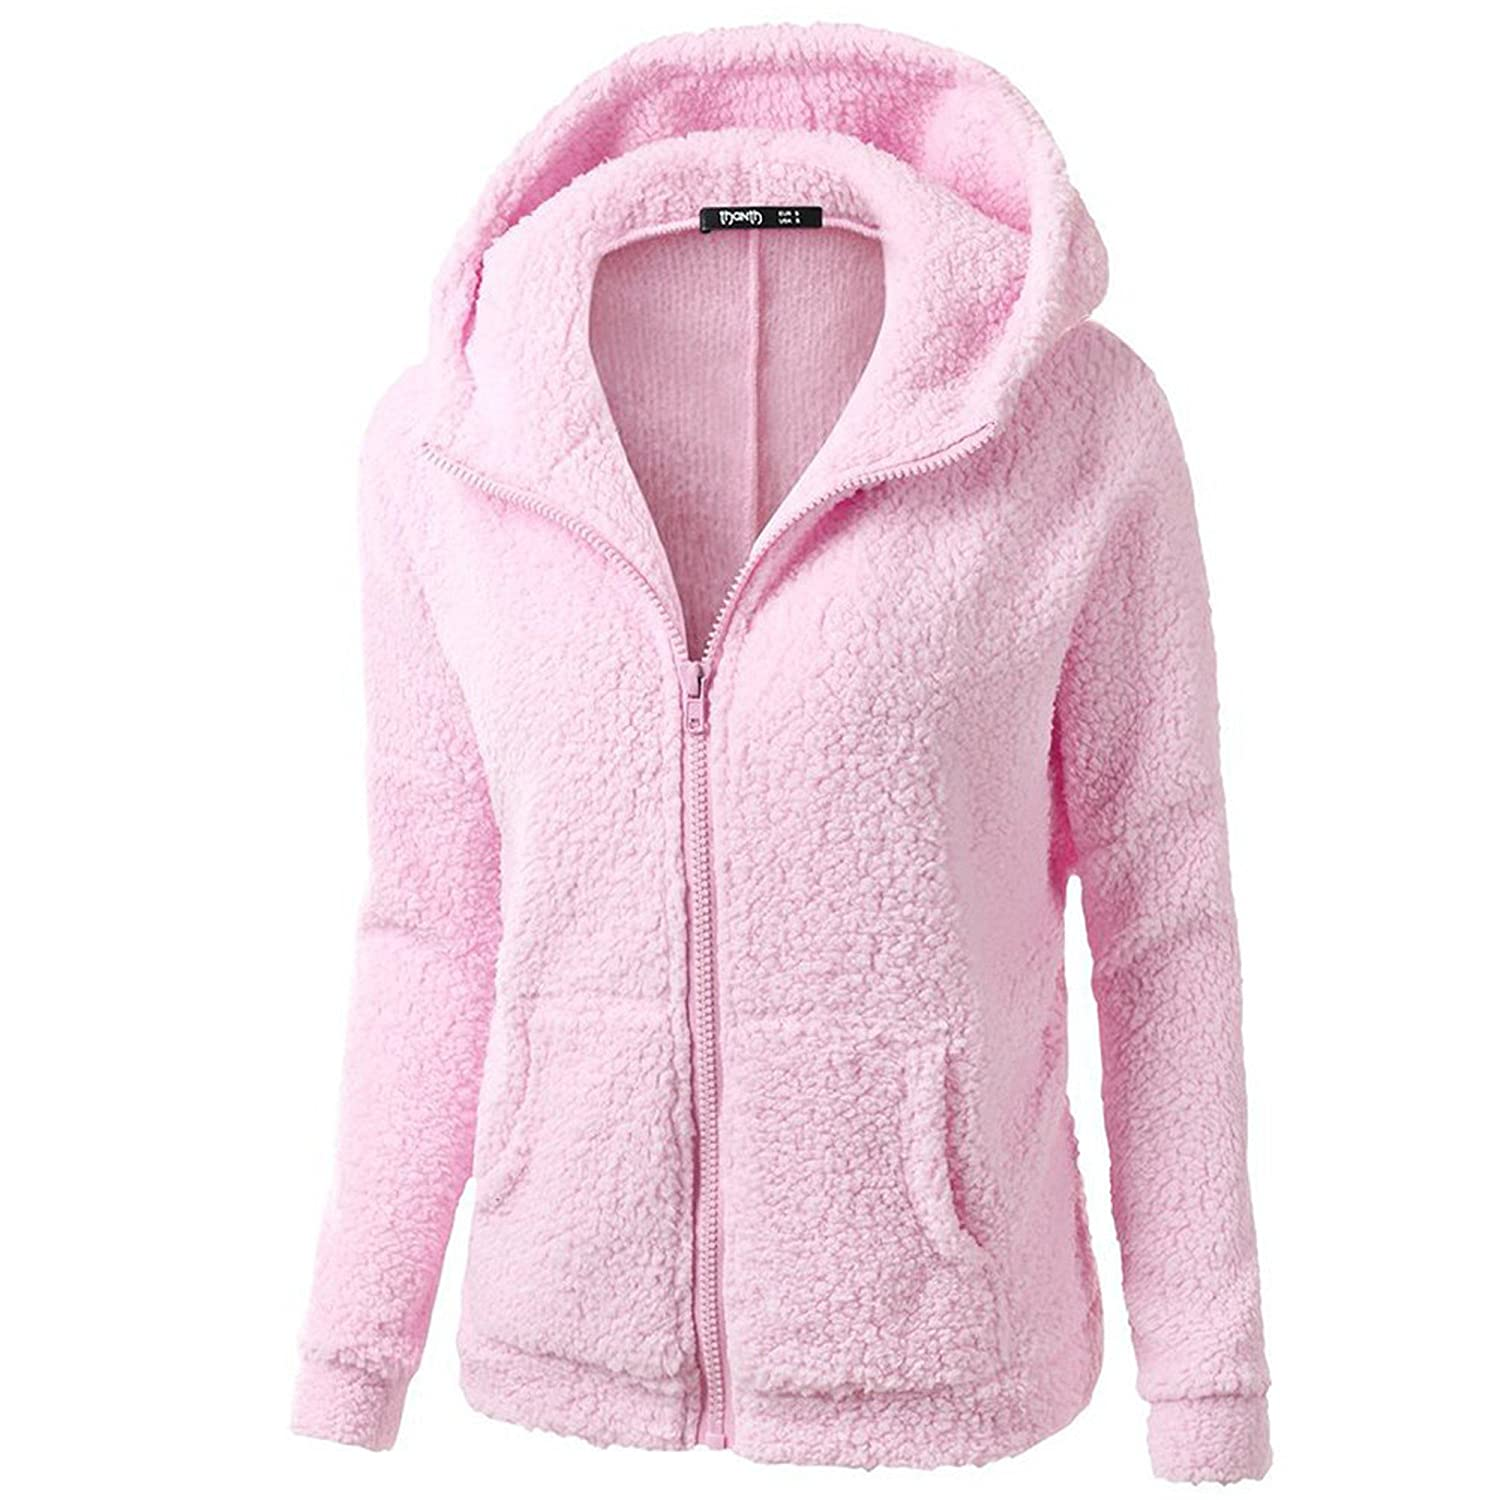 Women's Clothing Women Warm Autumn Winter Hoodies Thicken Fleece Coat Zip Up Hooded Slim Parka Overcoat Hoodies Woman Korean Clothes